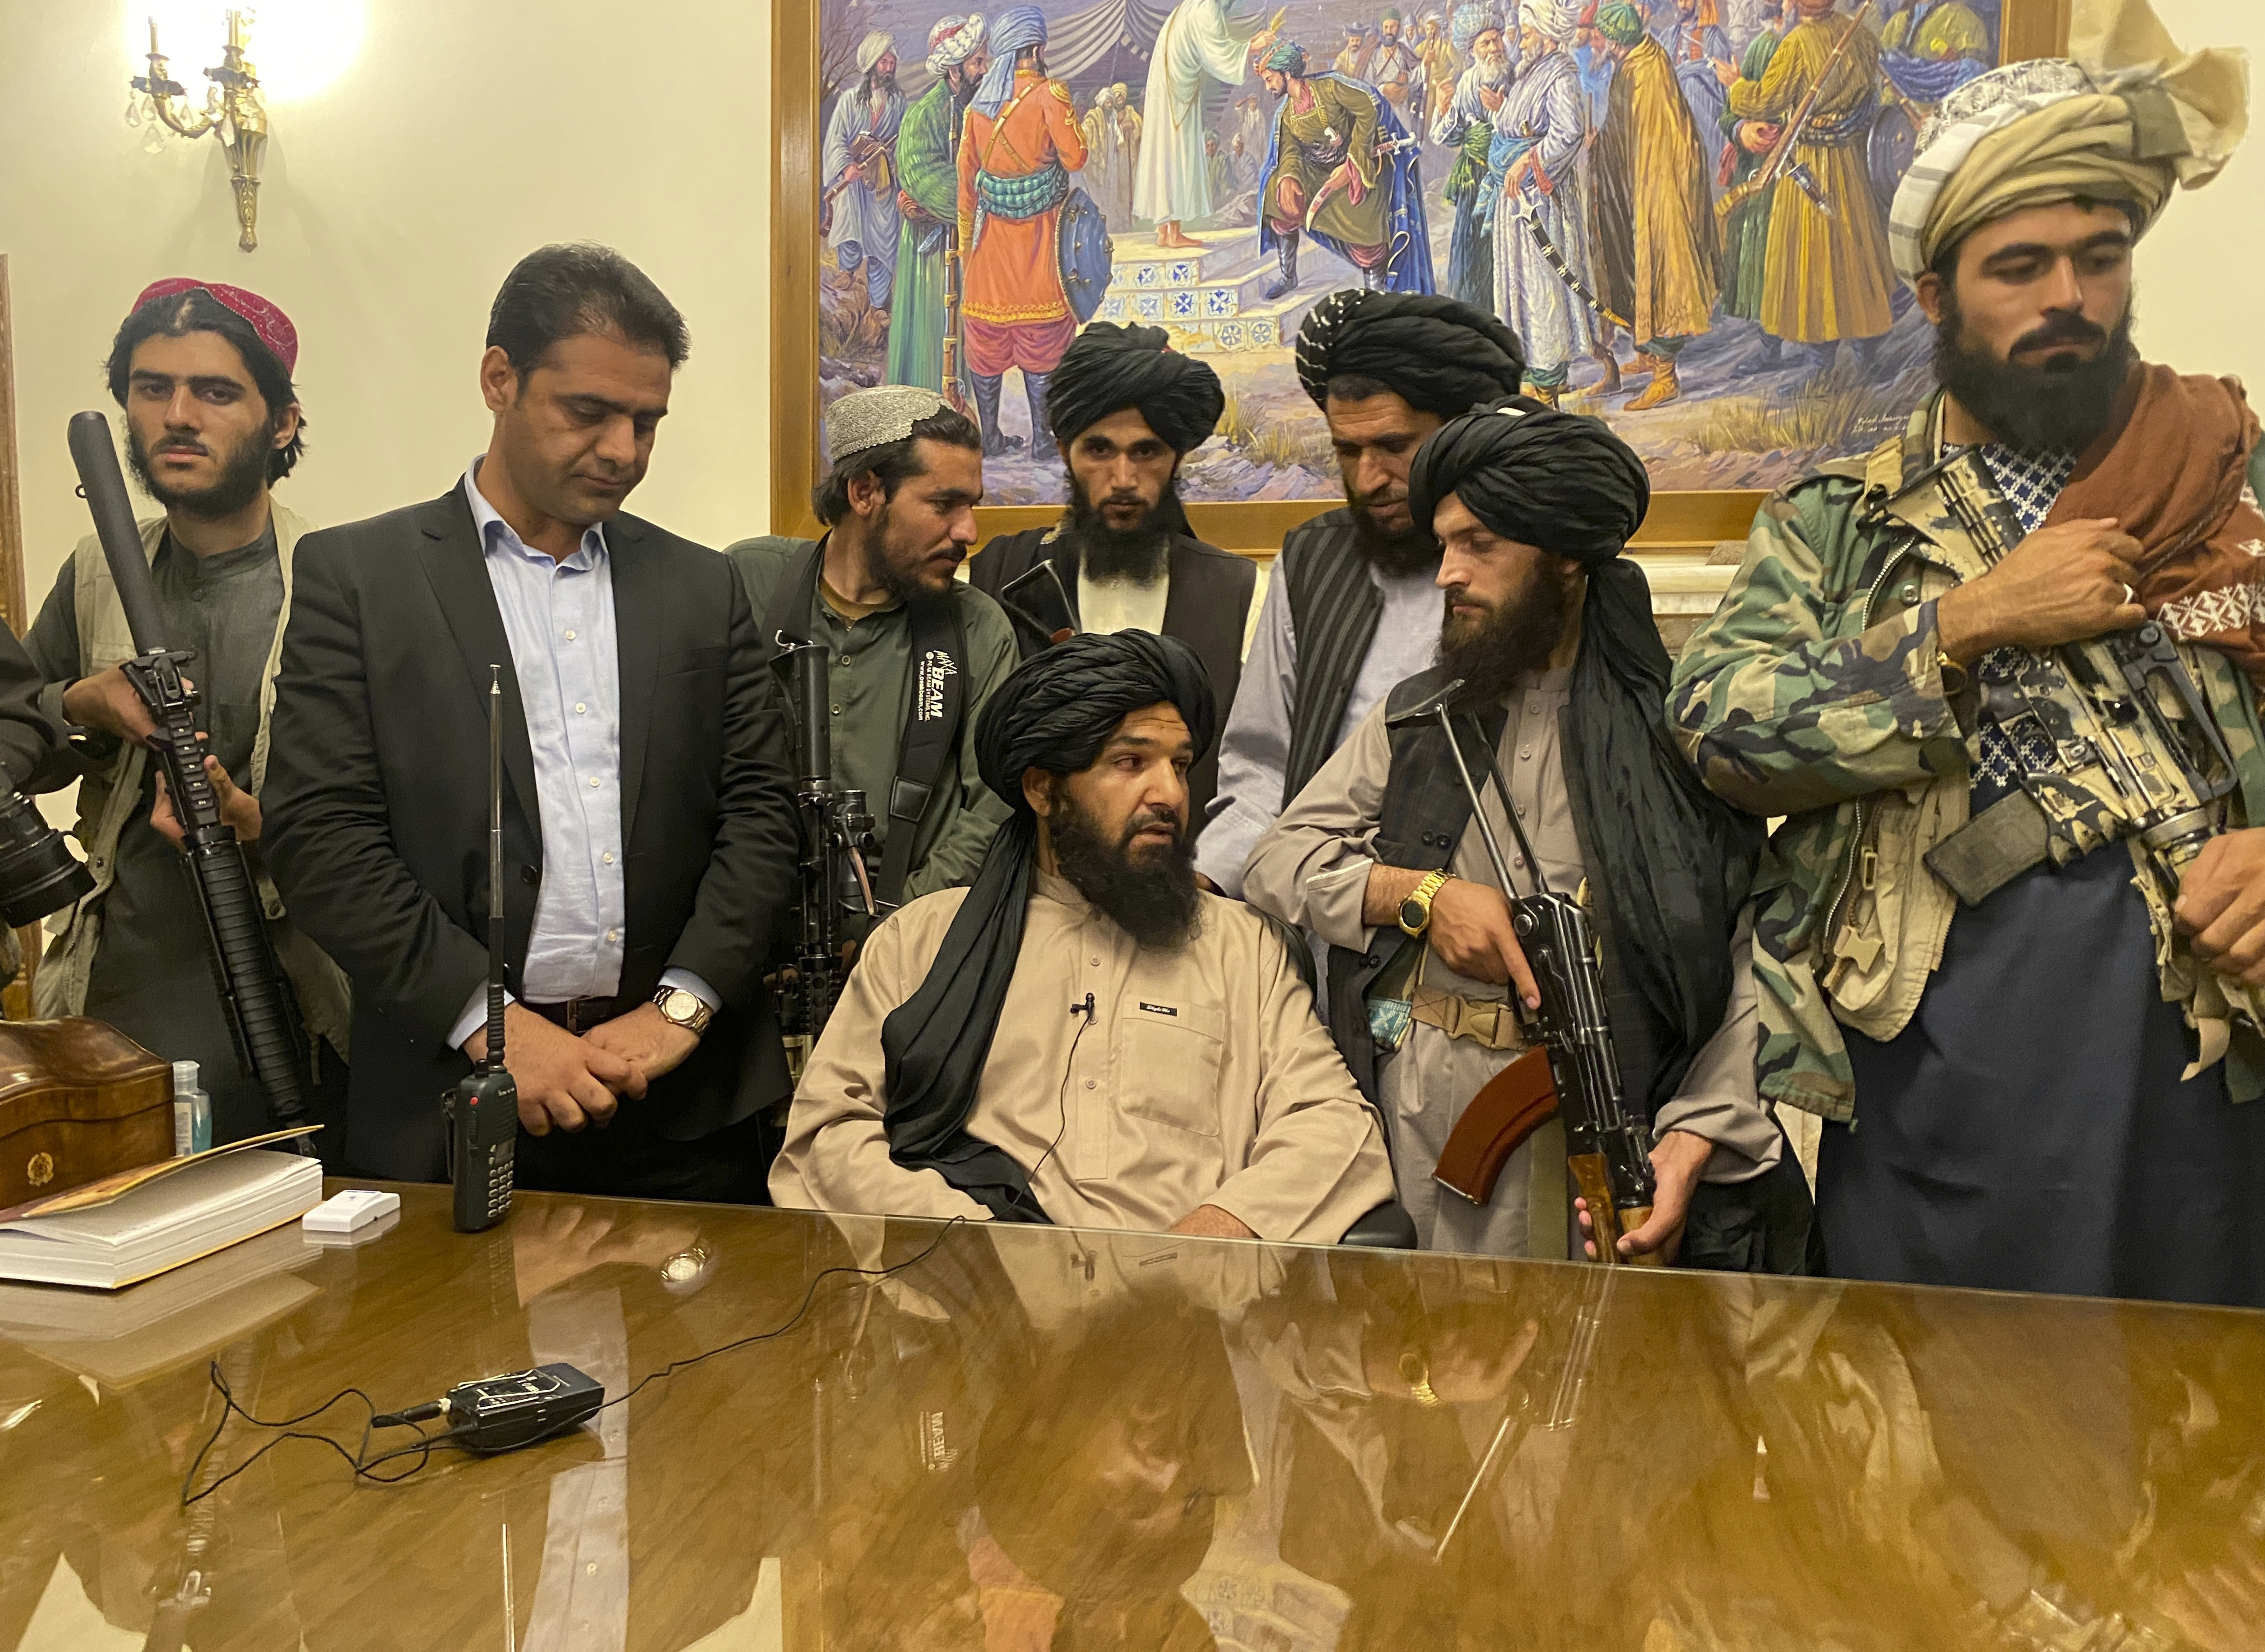 Taliban fighters take control of Afghan presidential palace Sunday.